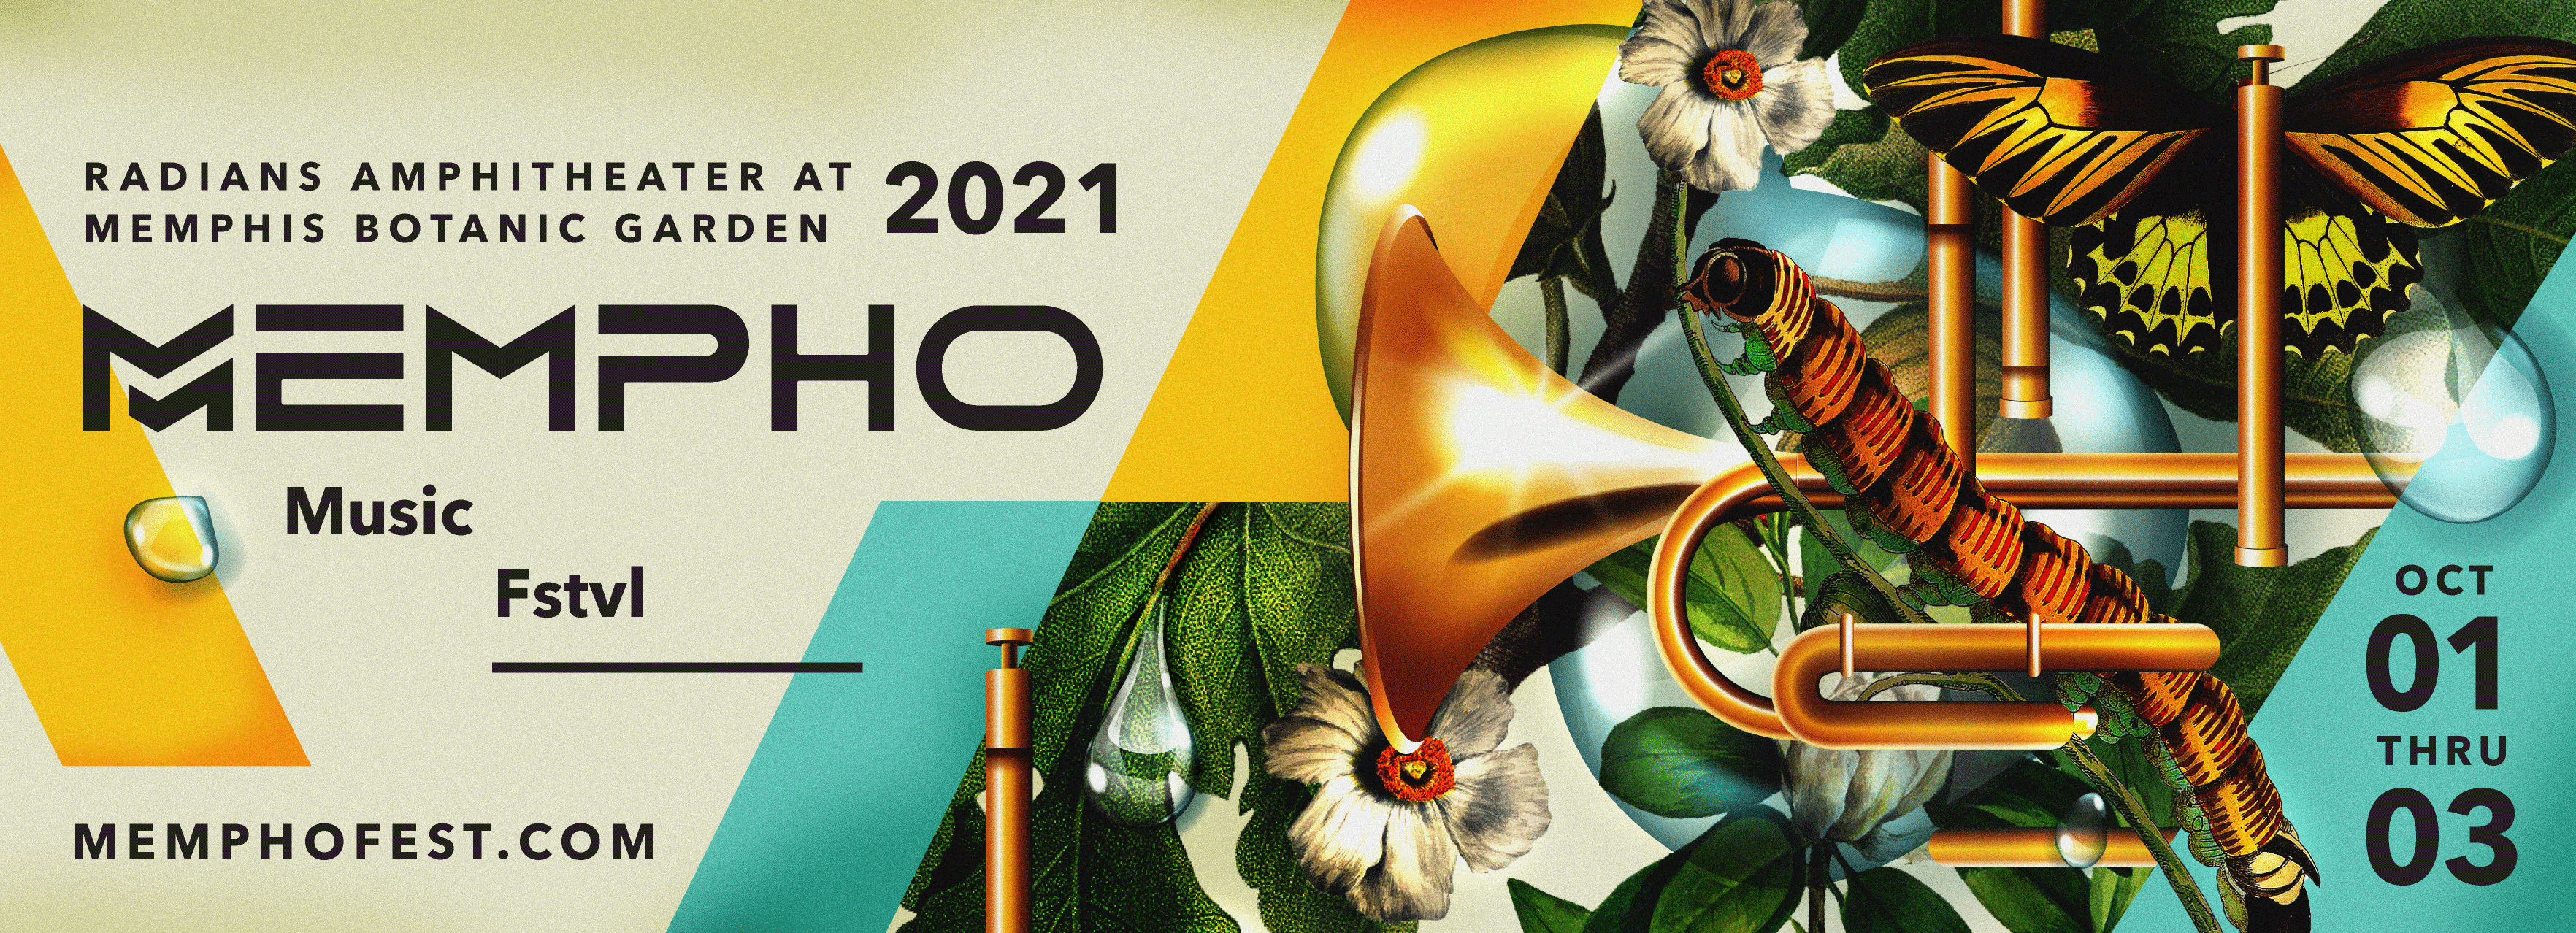 poster for Mempho music festival 2021